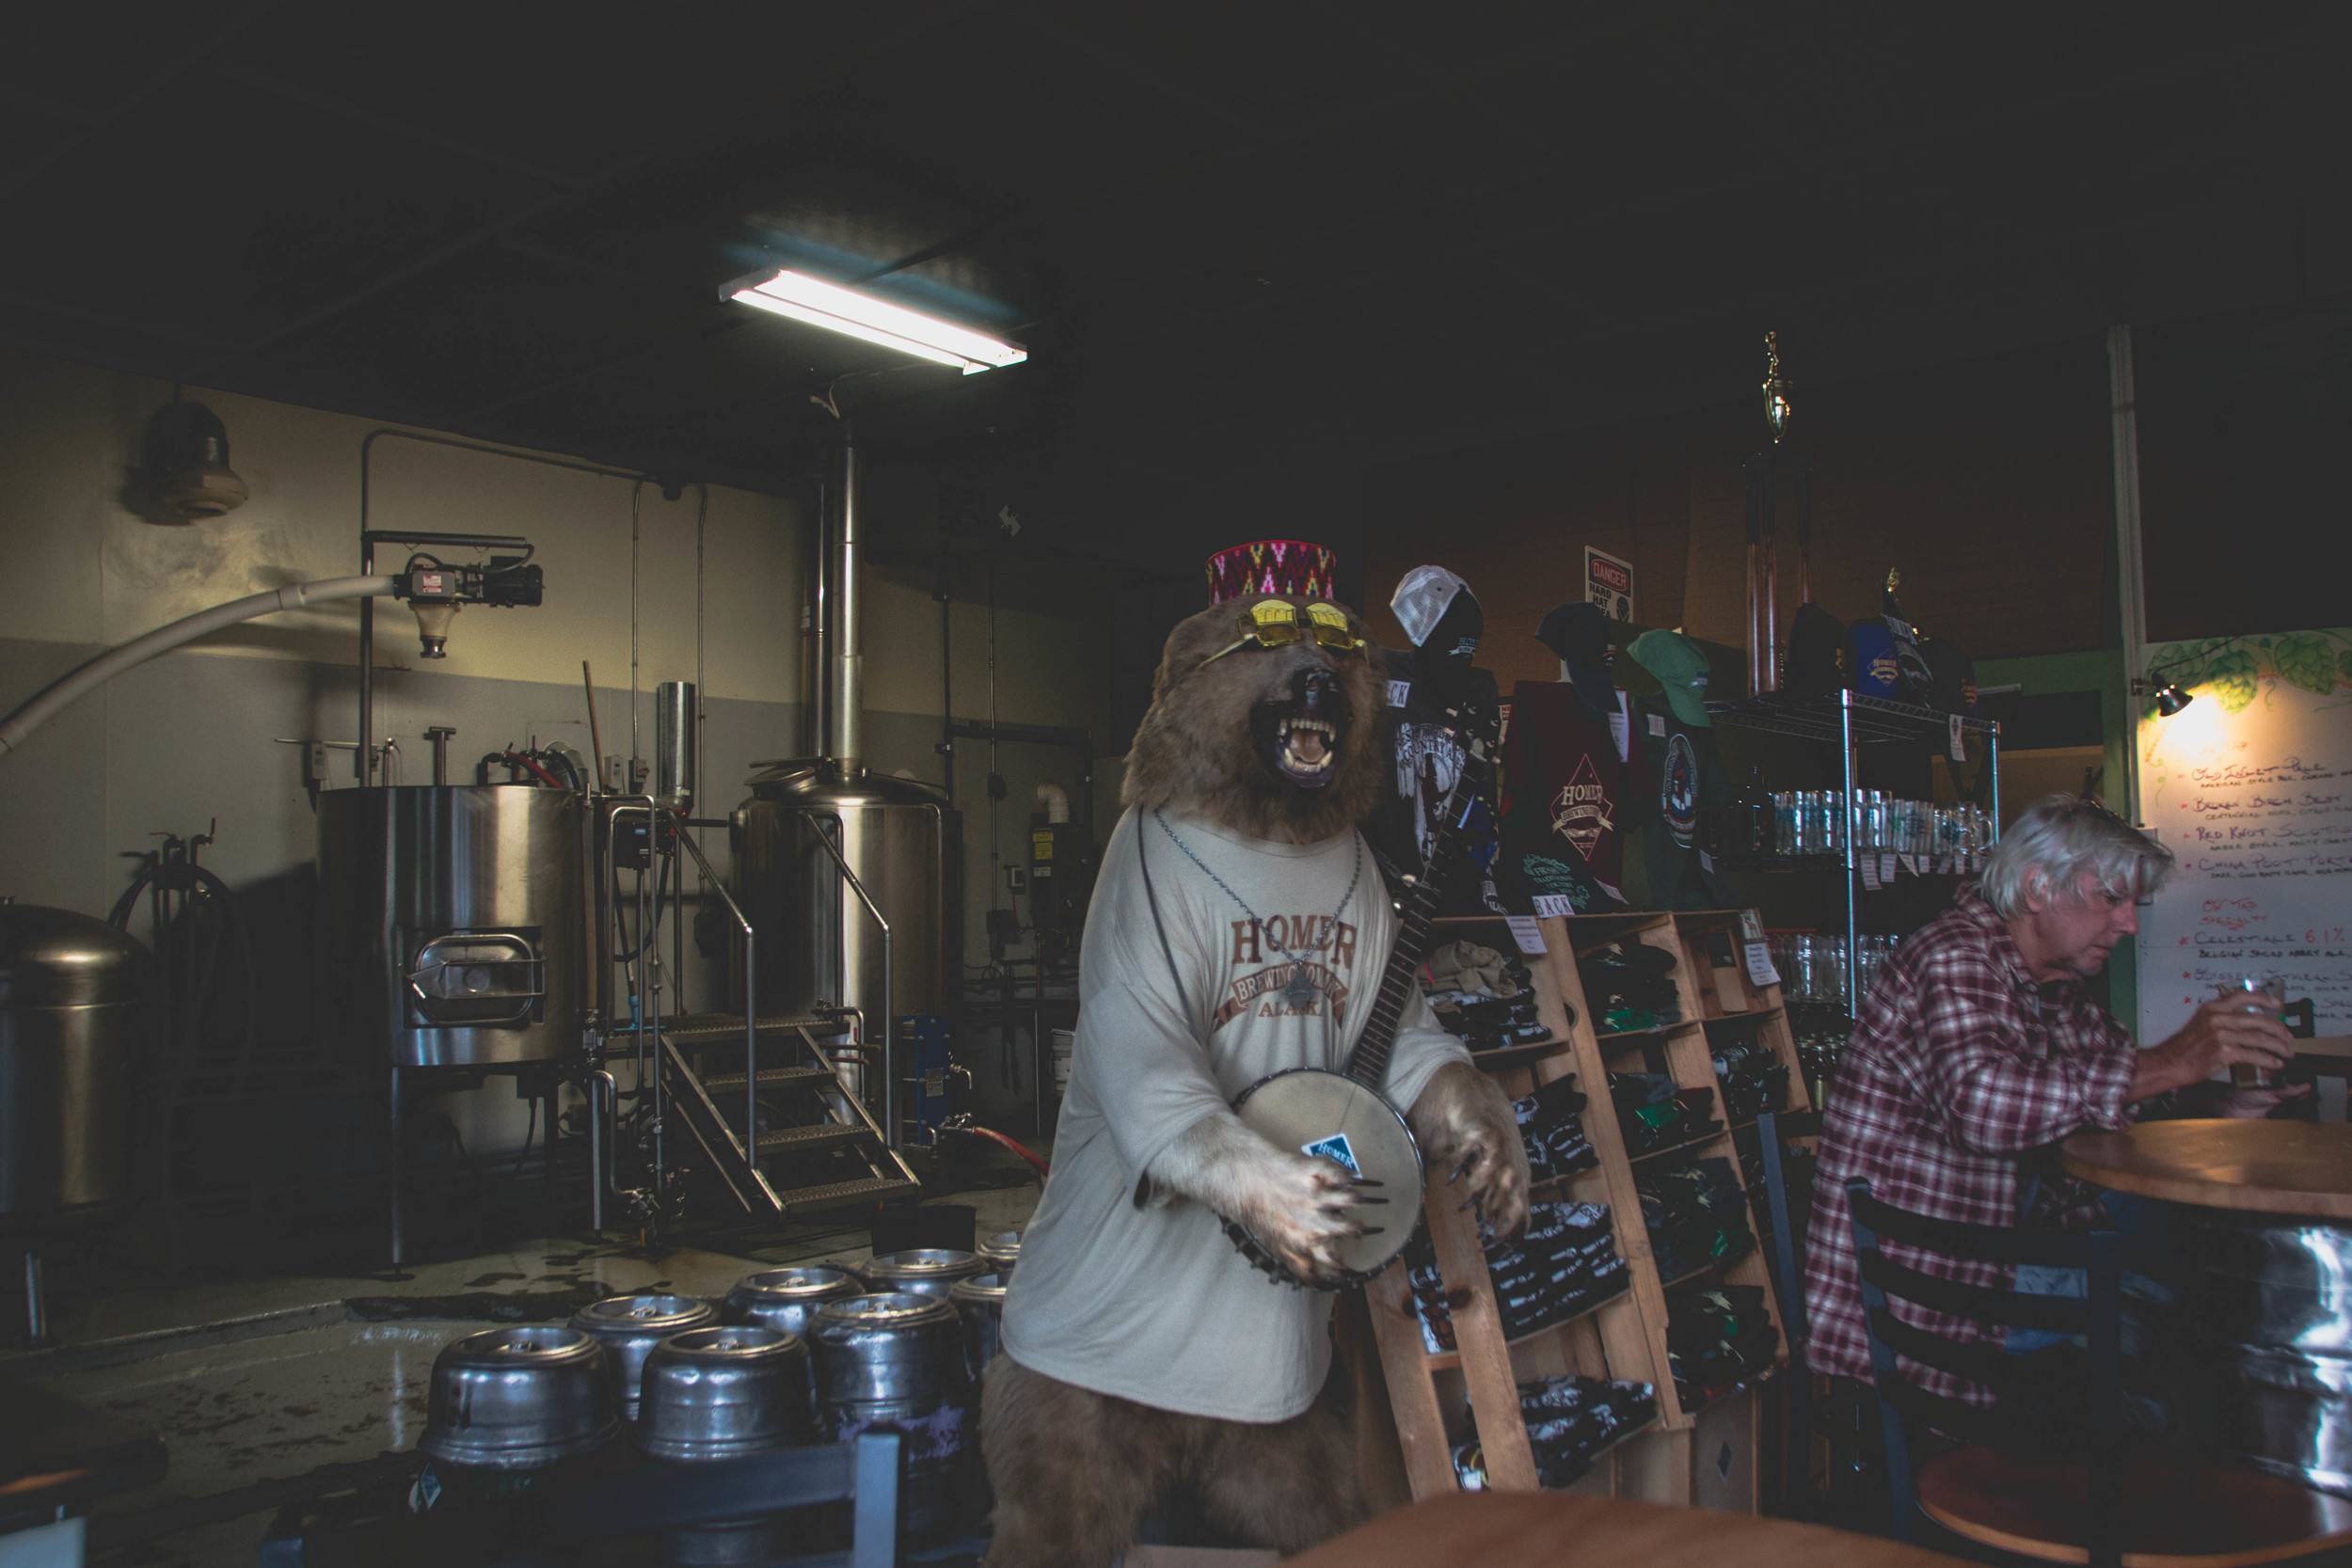 Friendly musical bear hangin in the tap room while some locals do the same.